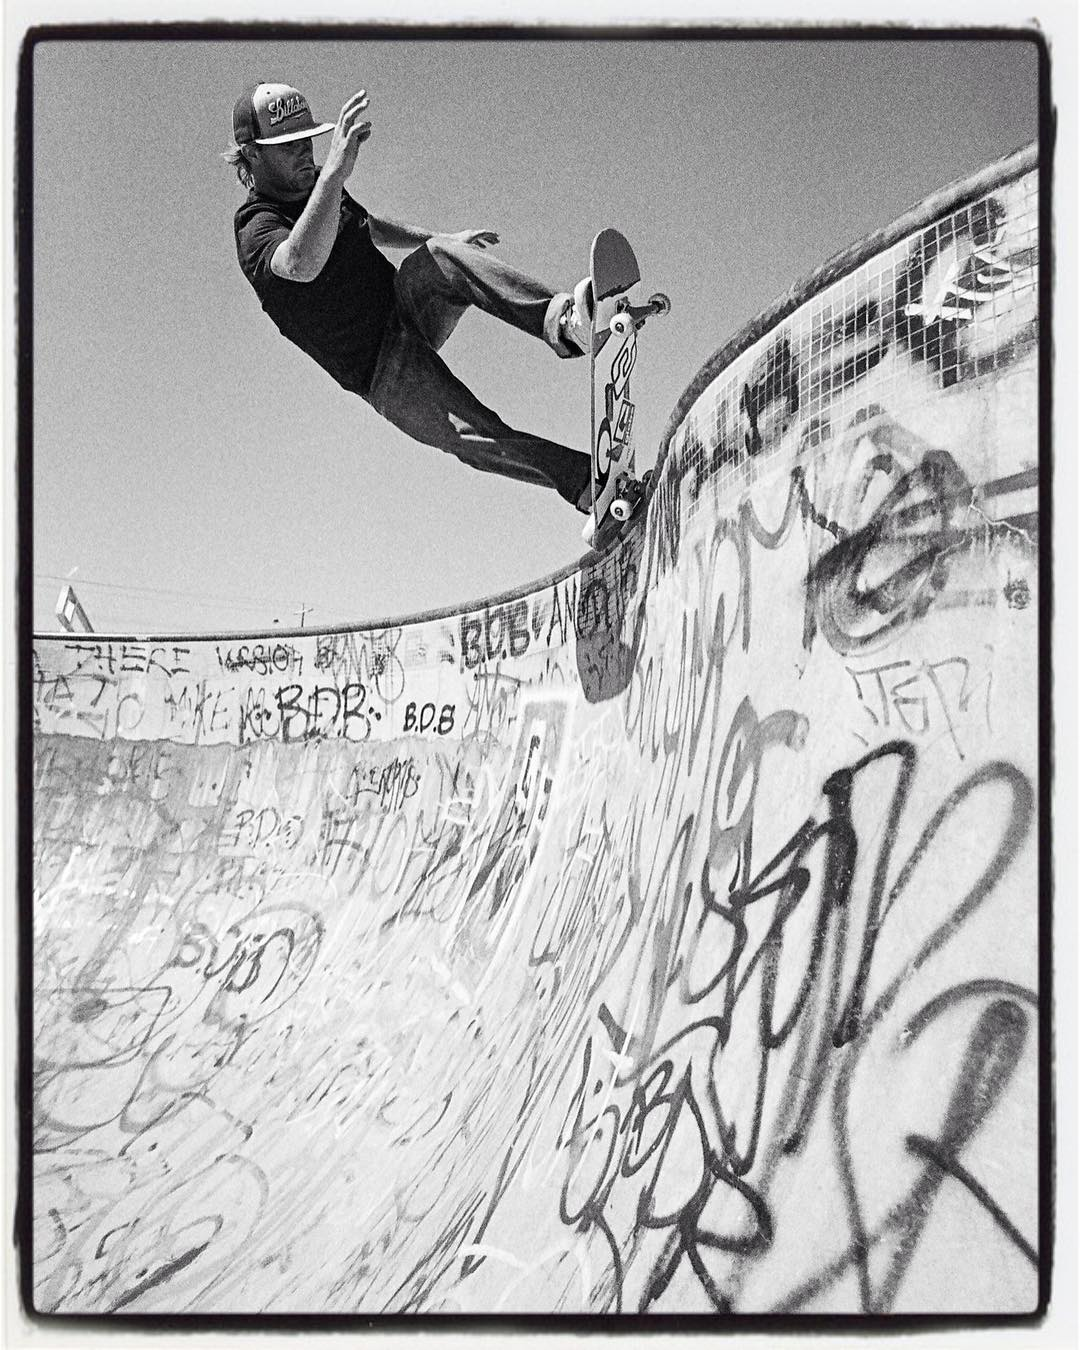 #throwbackthursday Renton Millar, pivot fakie, Coburg, OZ, 2004 #rentos #pool #bowl #concrete #skateboarding #oz #bailgun #gerdrieger.com